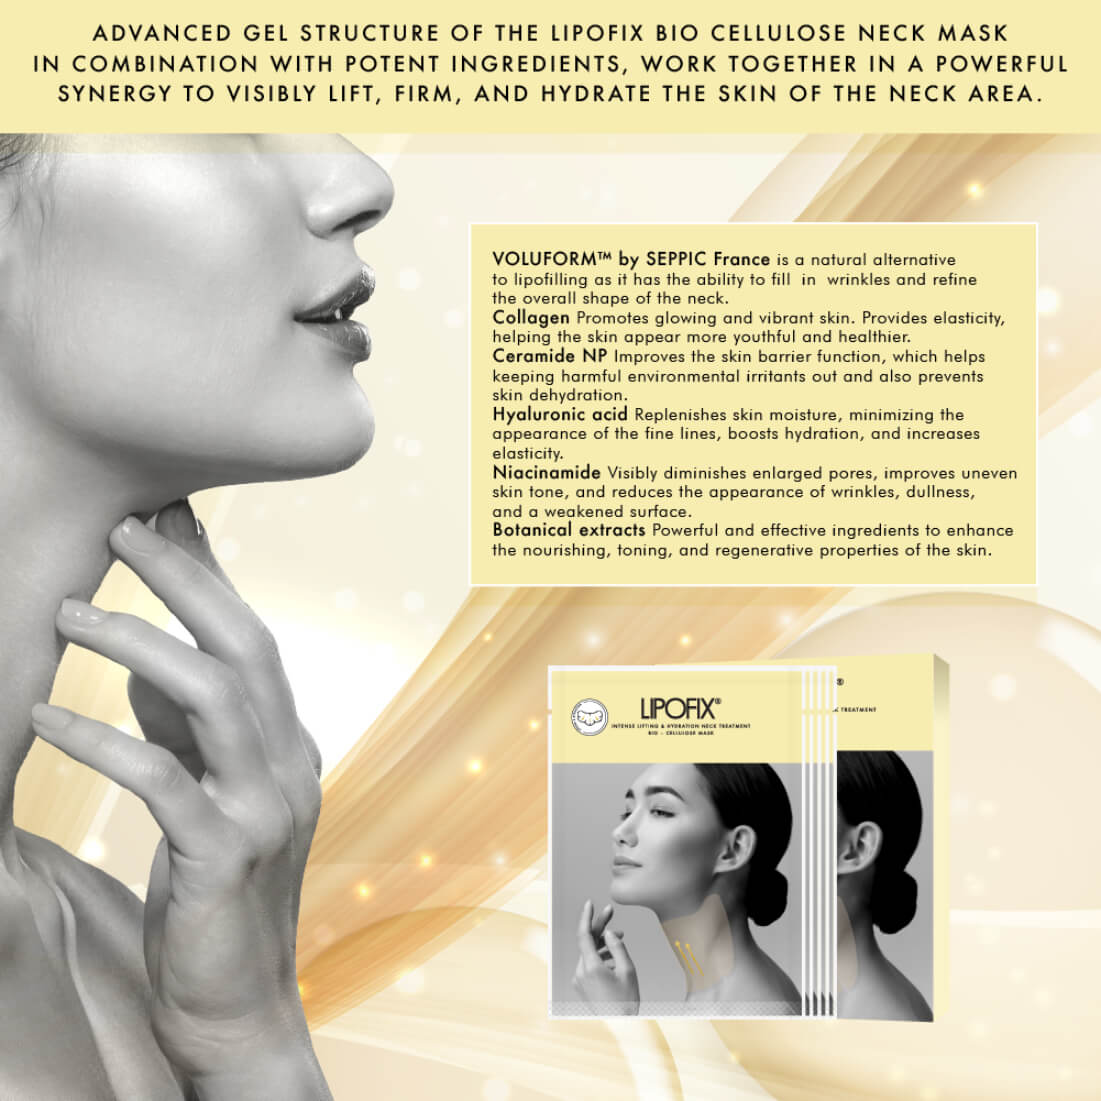 Neck Lifting Hydrating Firming Intense Treatment Bio - Cellulose Mask. LipoFix Ingredients - Medactiveshop